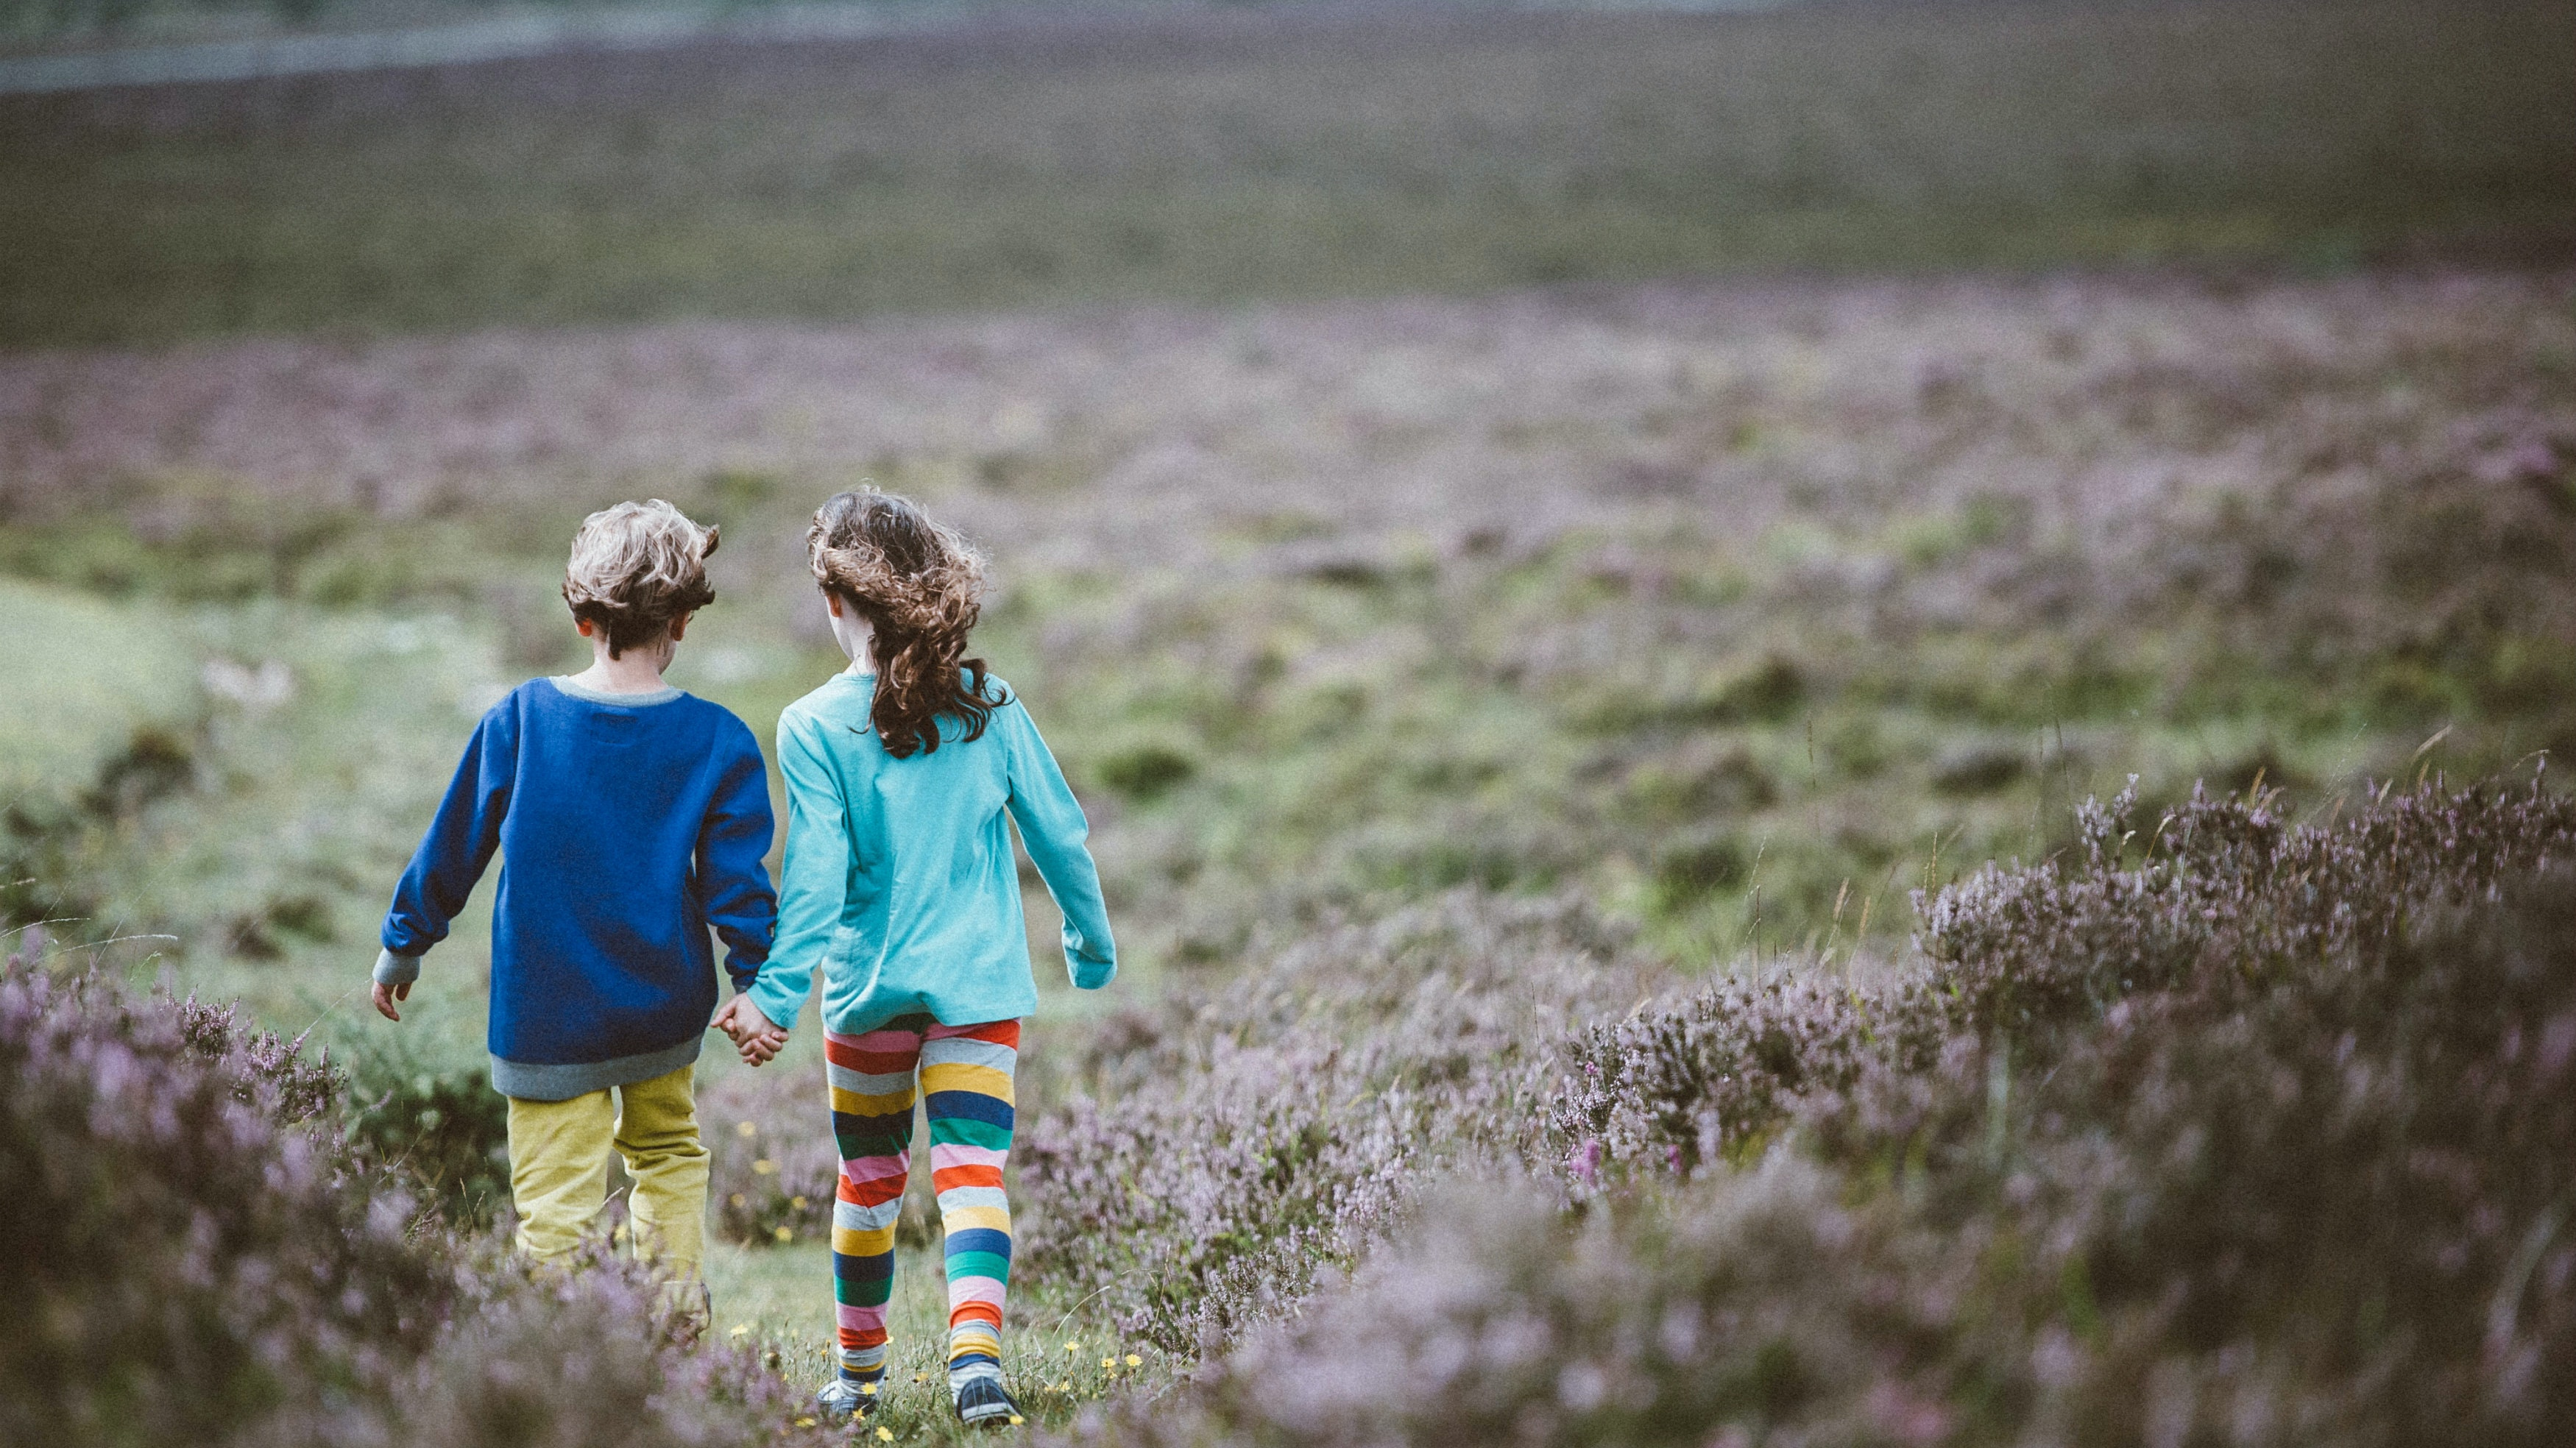 Children Need a Crisis of Faith: Seven Lessons from Parenting Through Doubt